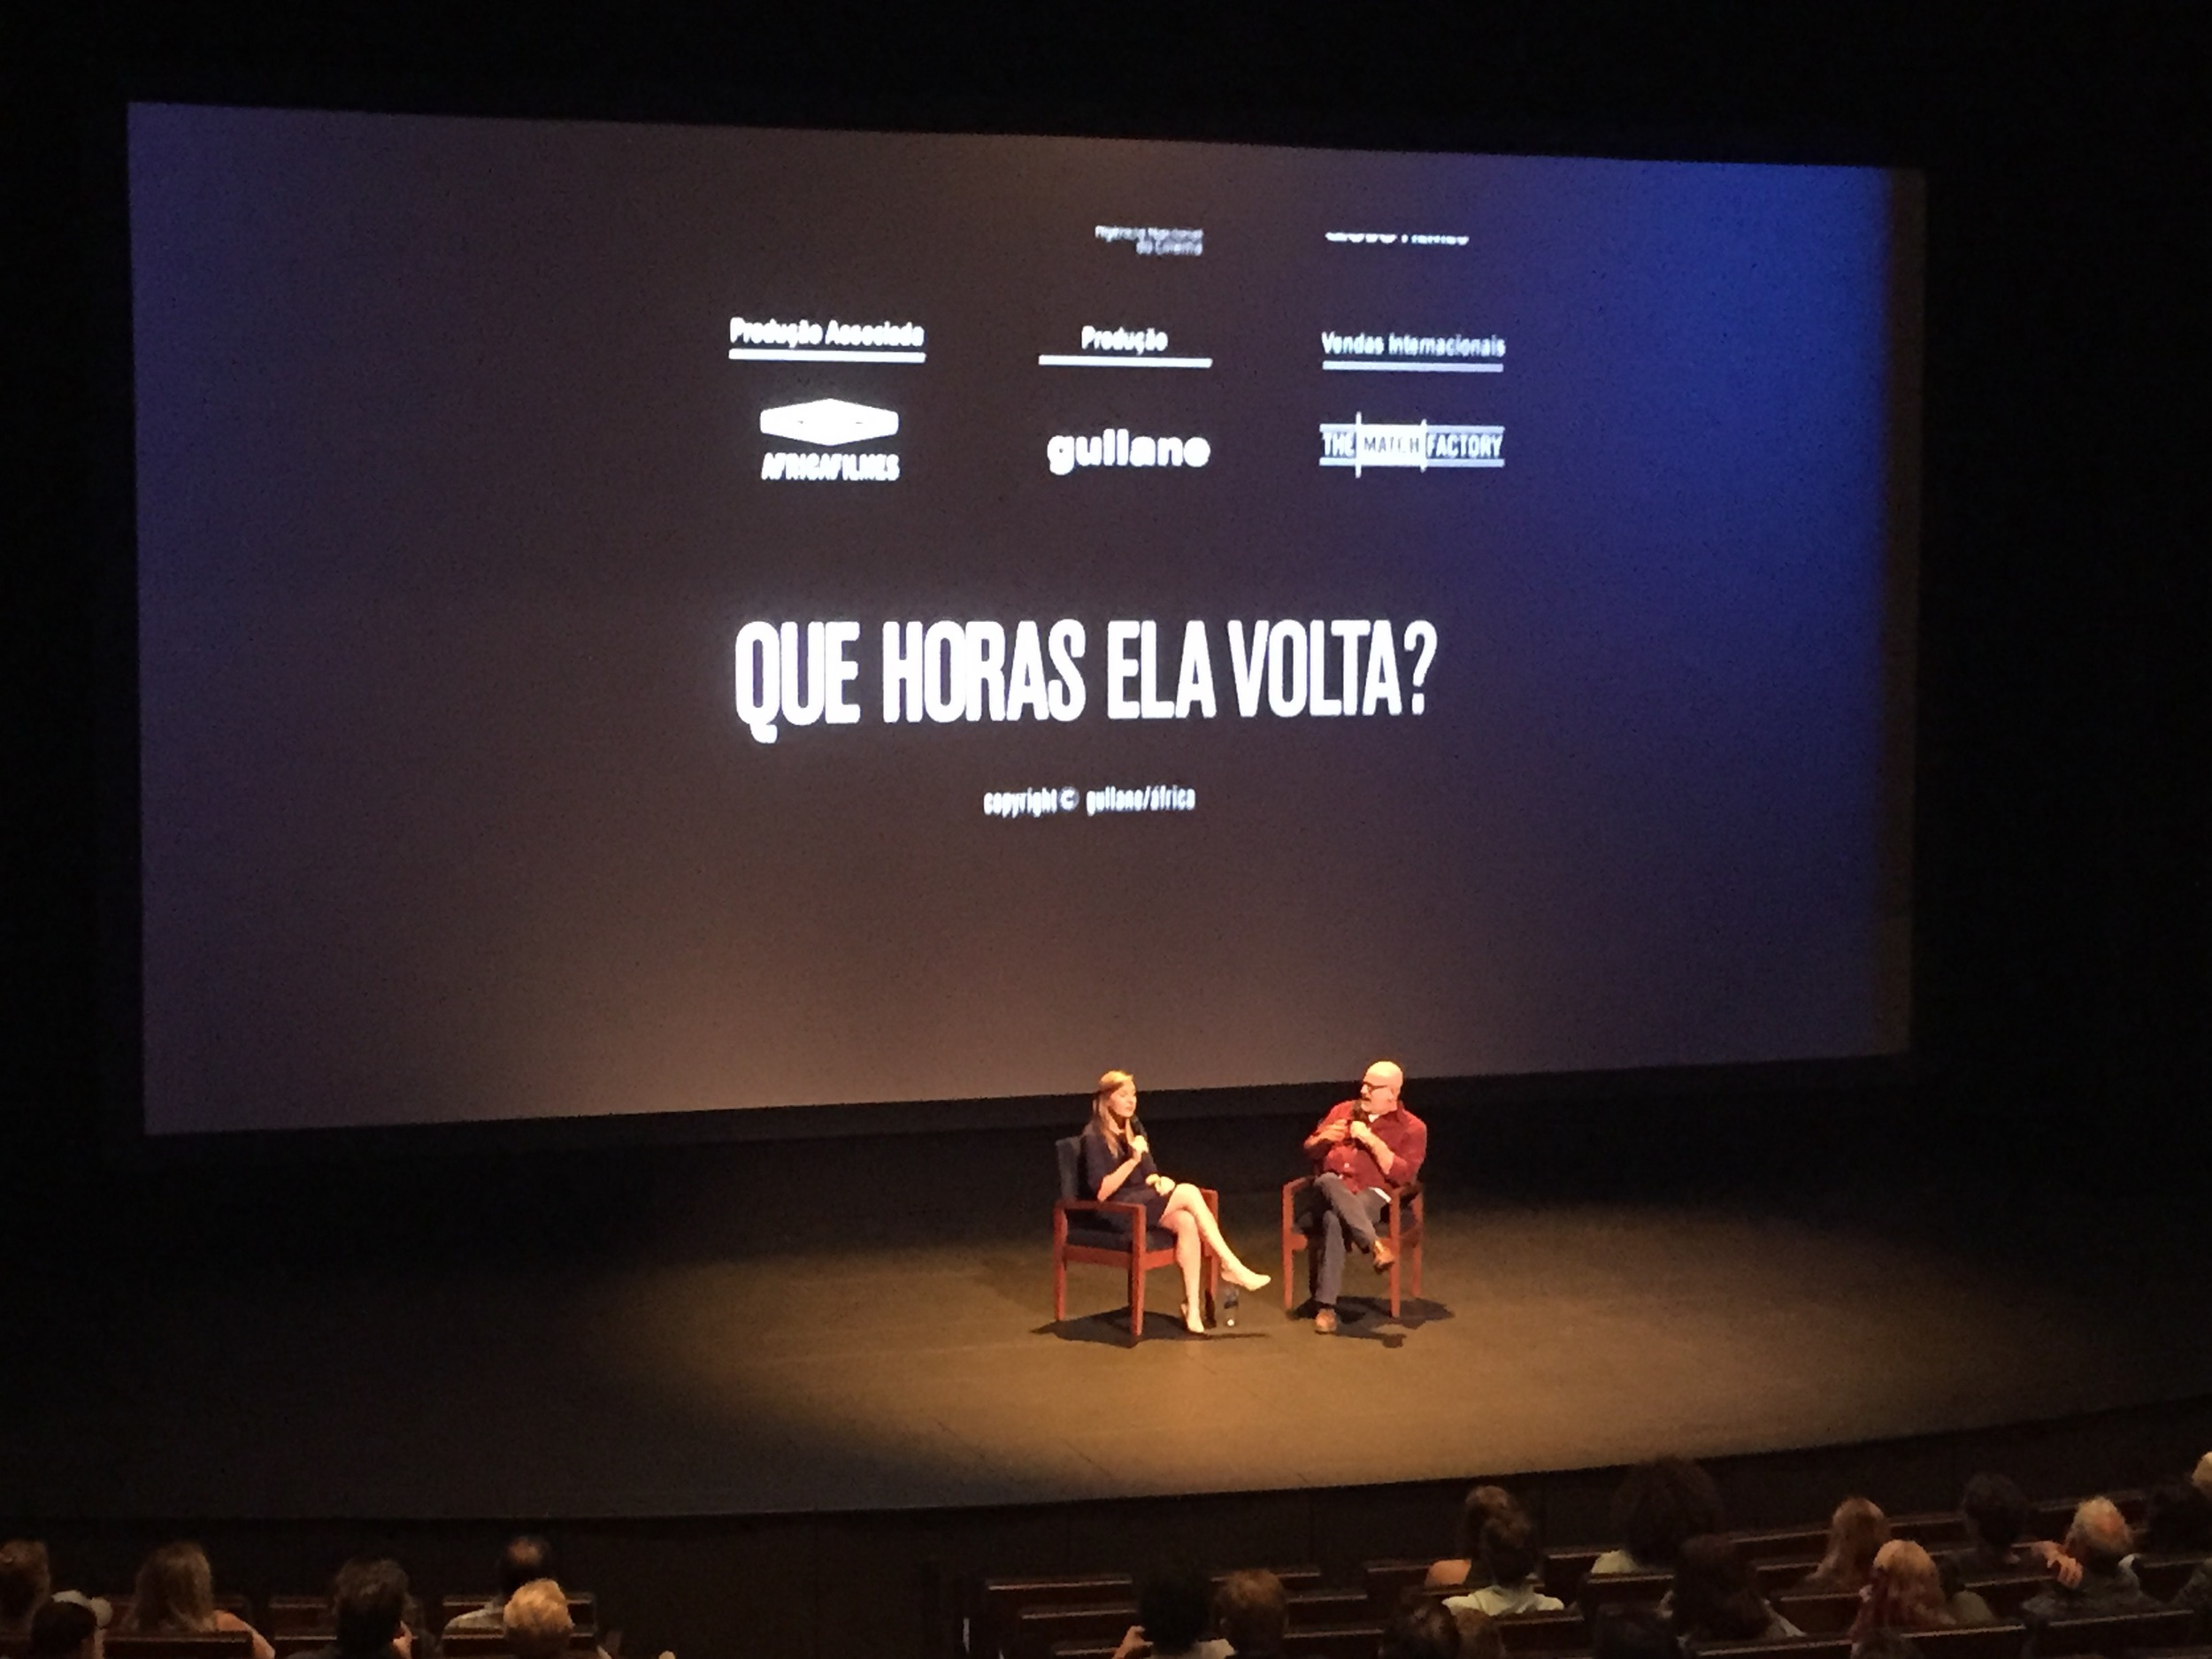 """Speaking about the politics of household work in South America at KRCW's First Take screening of """" The Second Mother (Que Horas Ela Volta?)""""  at the Wallis Annenberg Center for the Performing Arts in Los Angeles, California."""